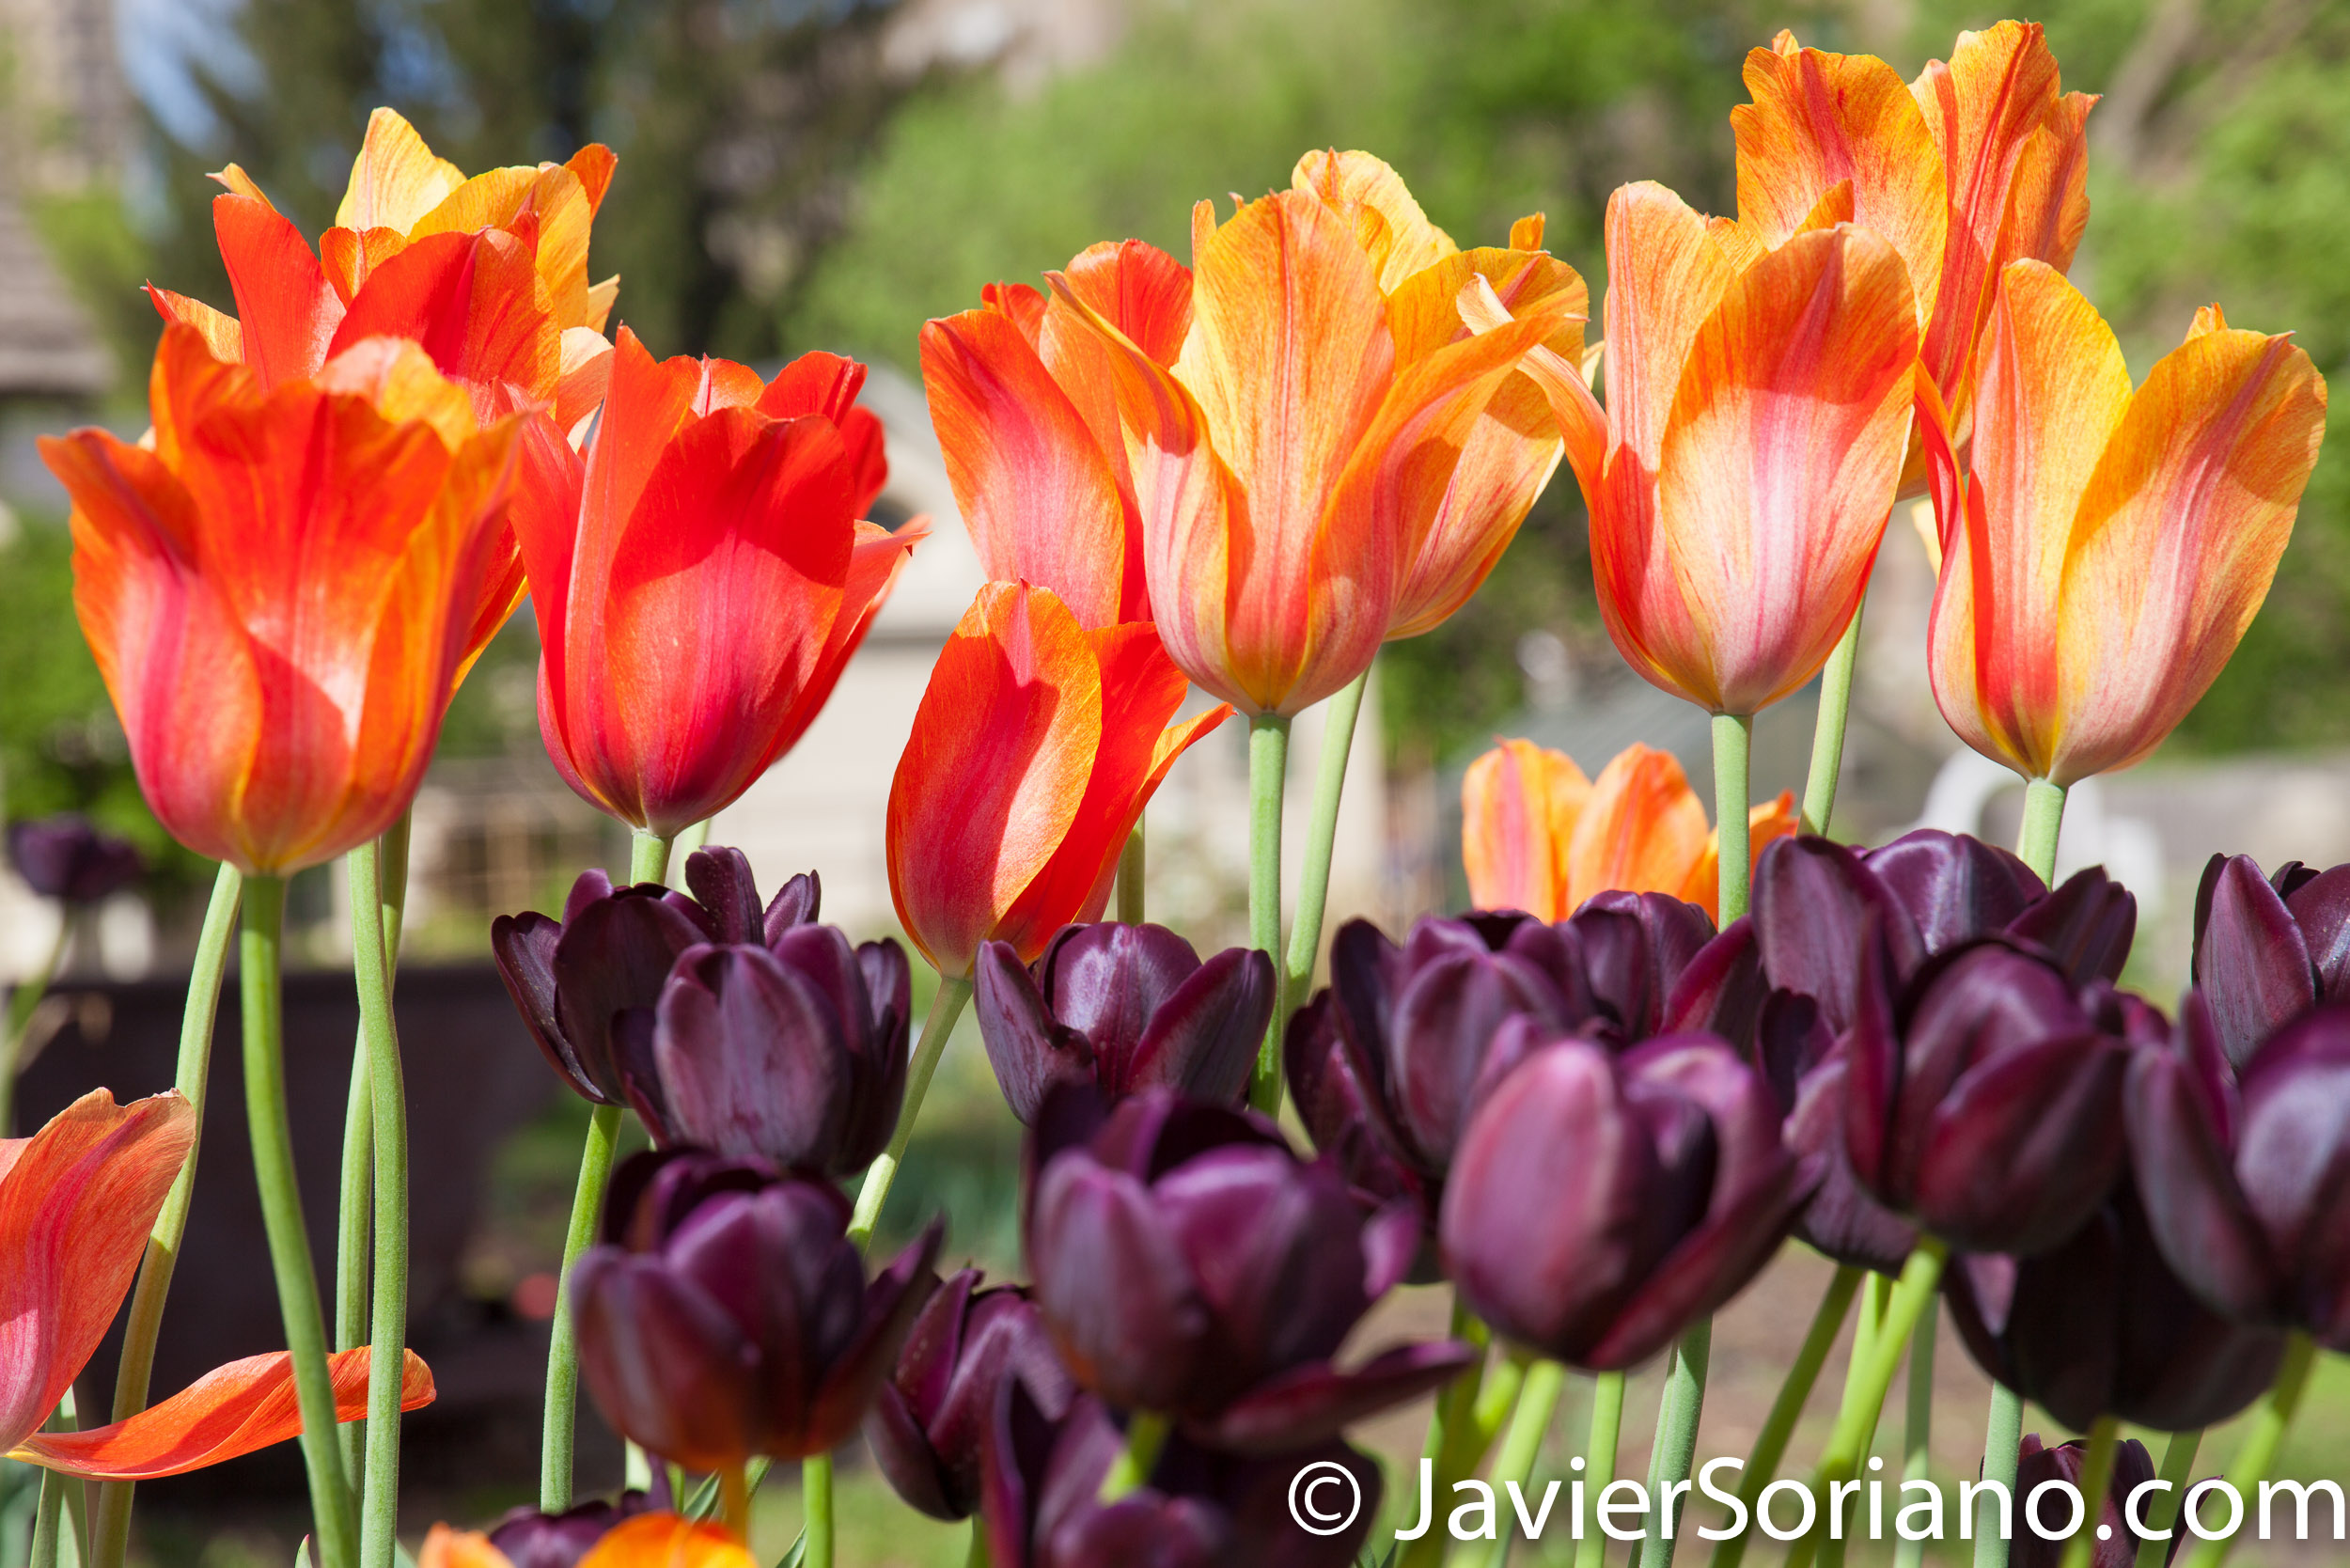 May 2, 2017 NYC - Beautiful tulips at the Brooklyn Botanic Garden/Hermosos tulipanes en el Jardín Botánico de Brooklyn. Photo by Javier Soriano/www.JavierSoriano.com